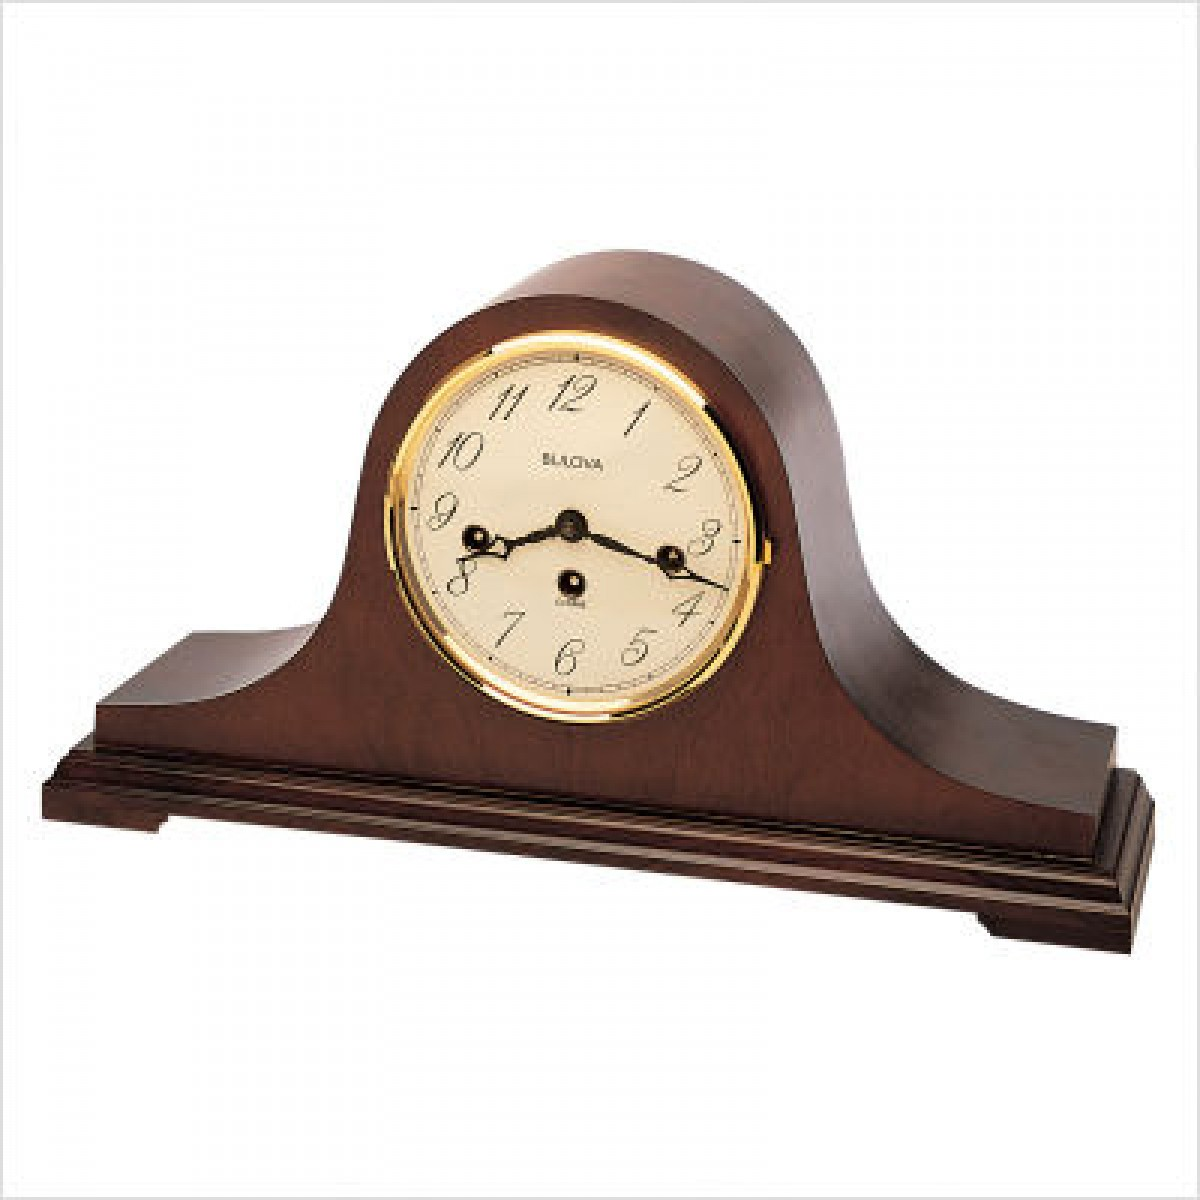 Bulova Holyoke Quartz Desk Clock | Bulova Desktop Clock | Bulova Mantel Clock